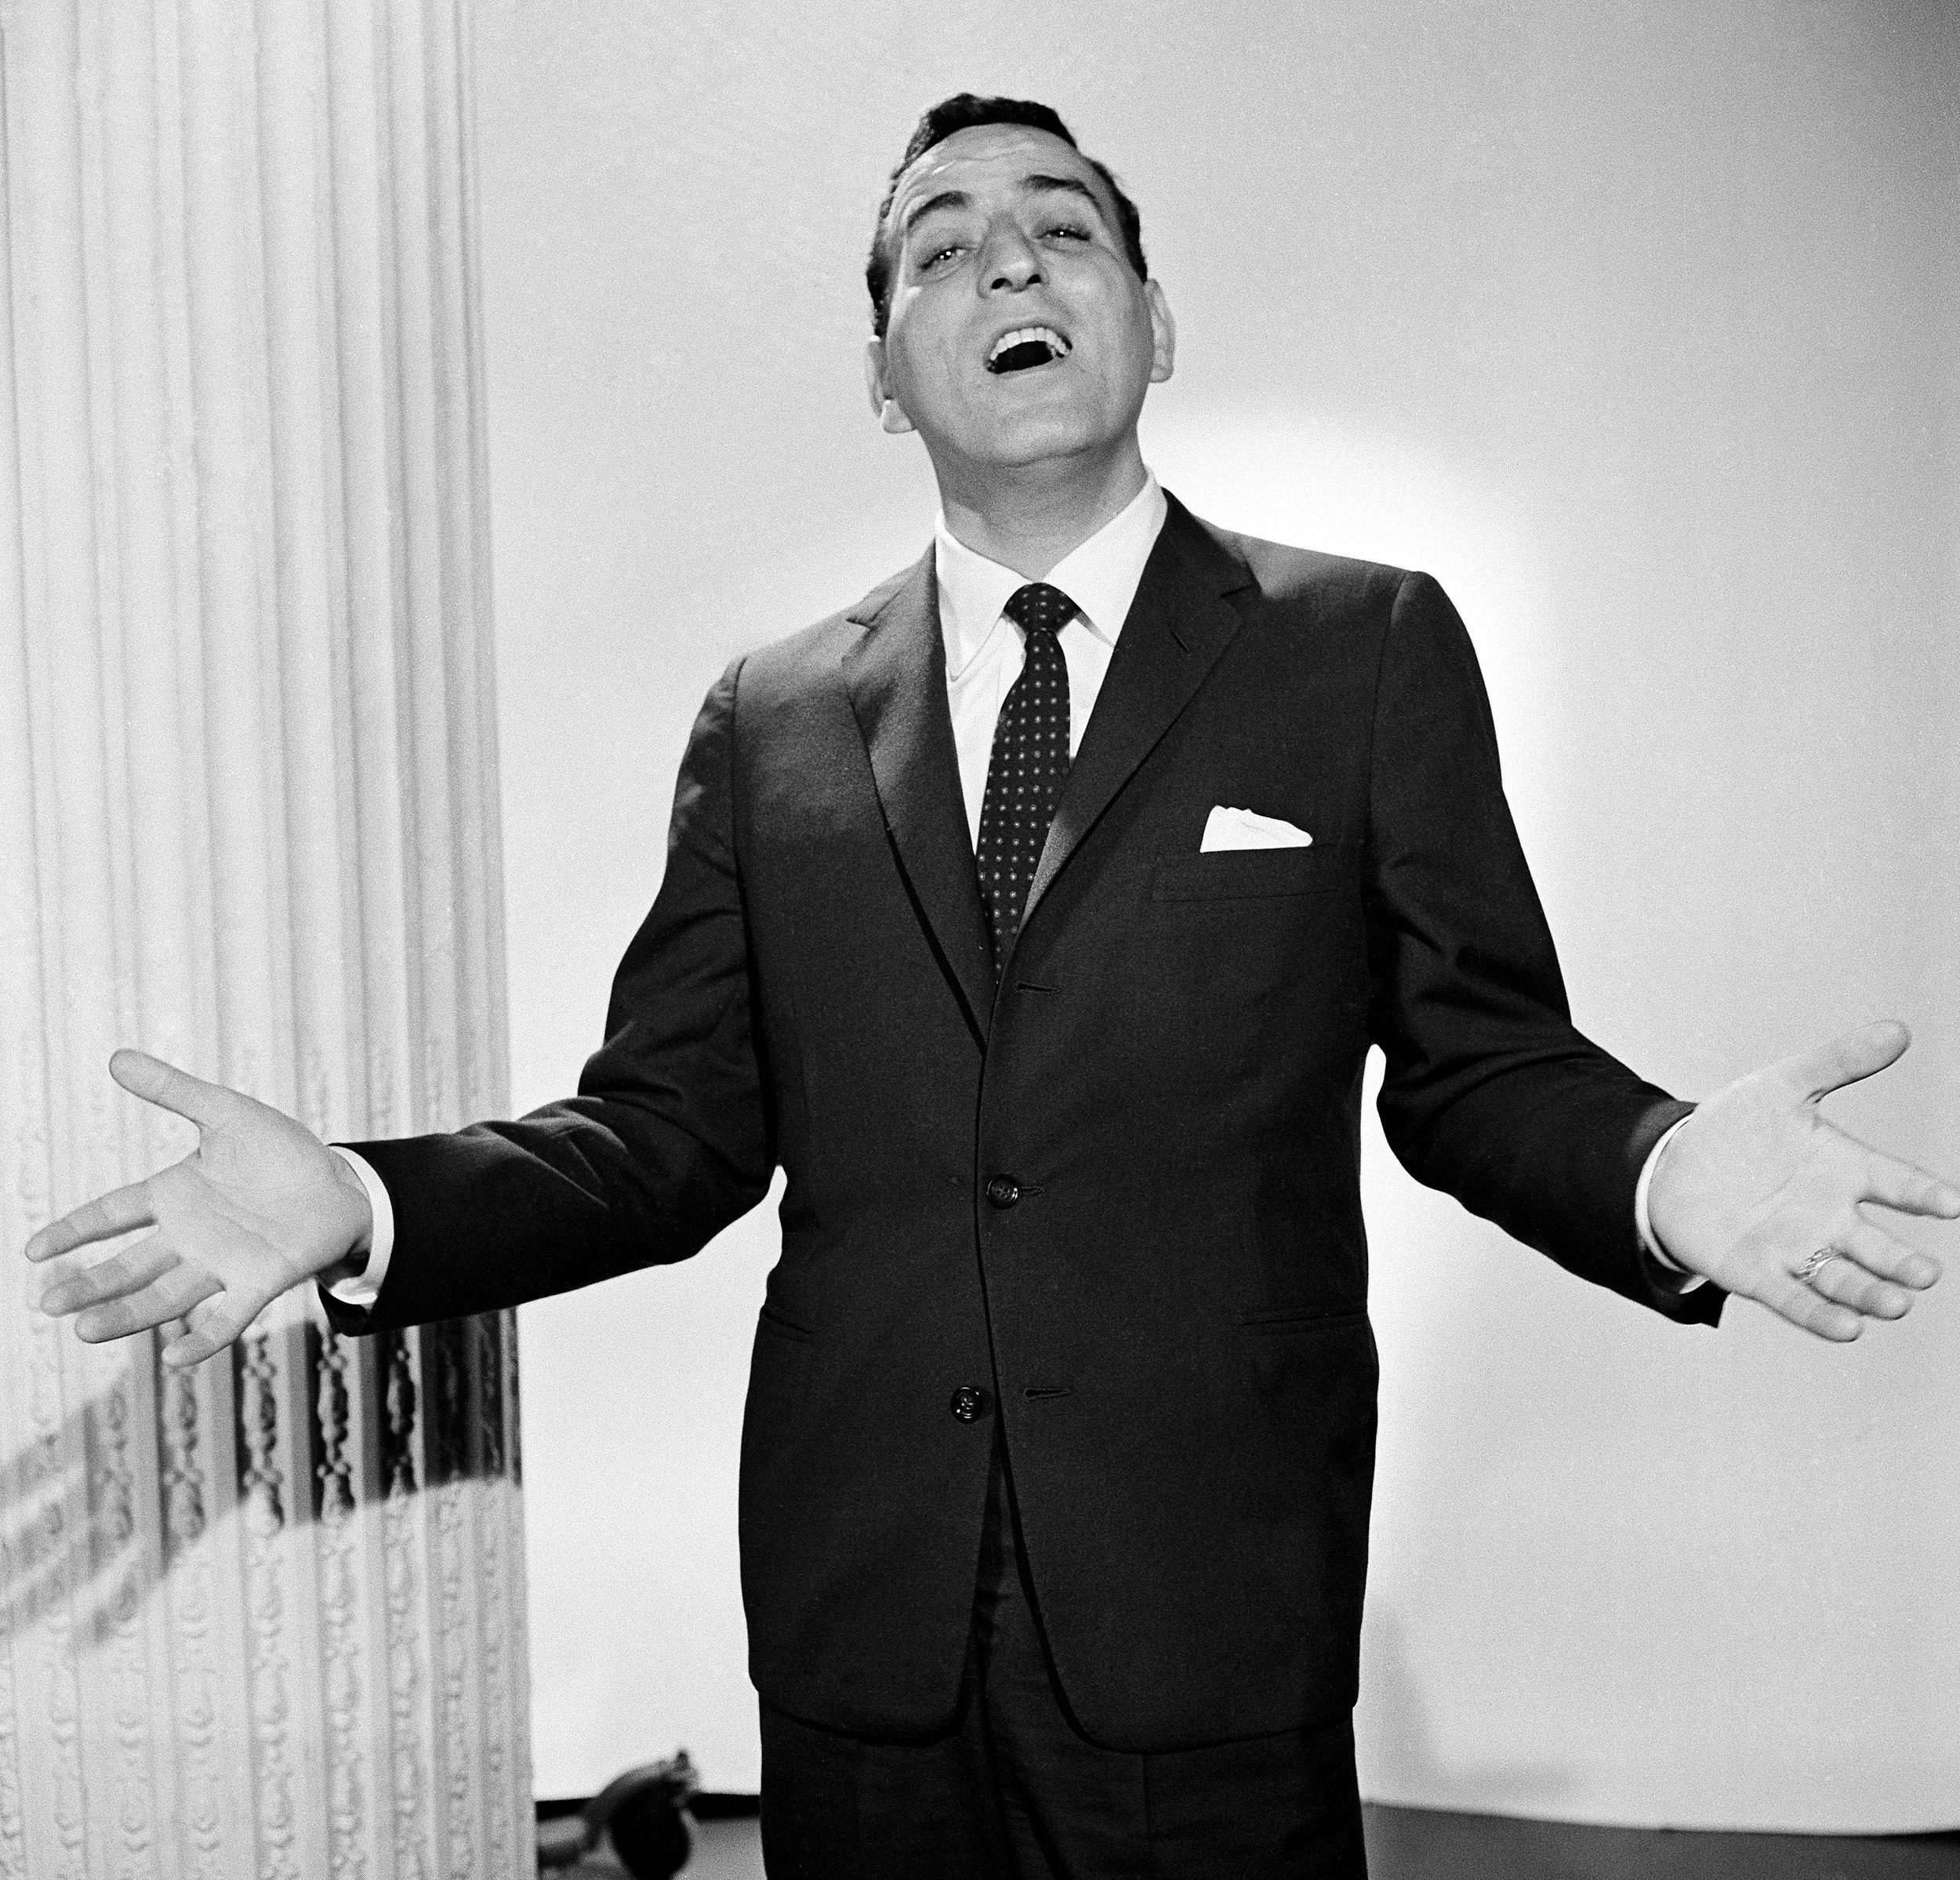 <p>Singer Tony Bennett on The Danish Shore Chevy Show, aired 5/31/59.</p>  <p>(Photo by: NBCU Photo Bank)</p>